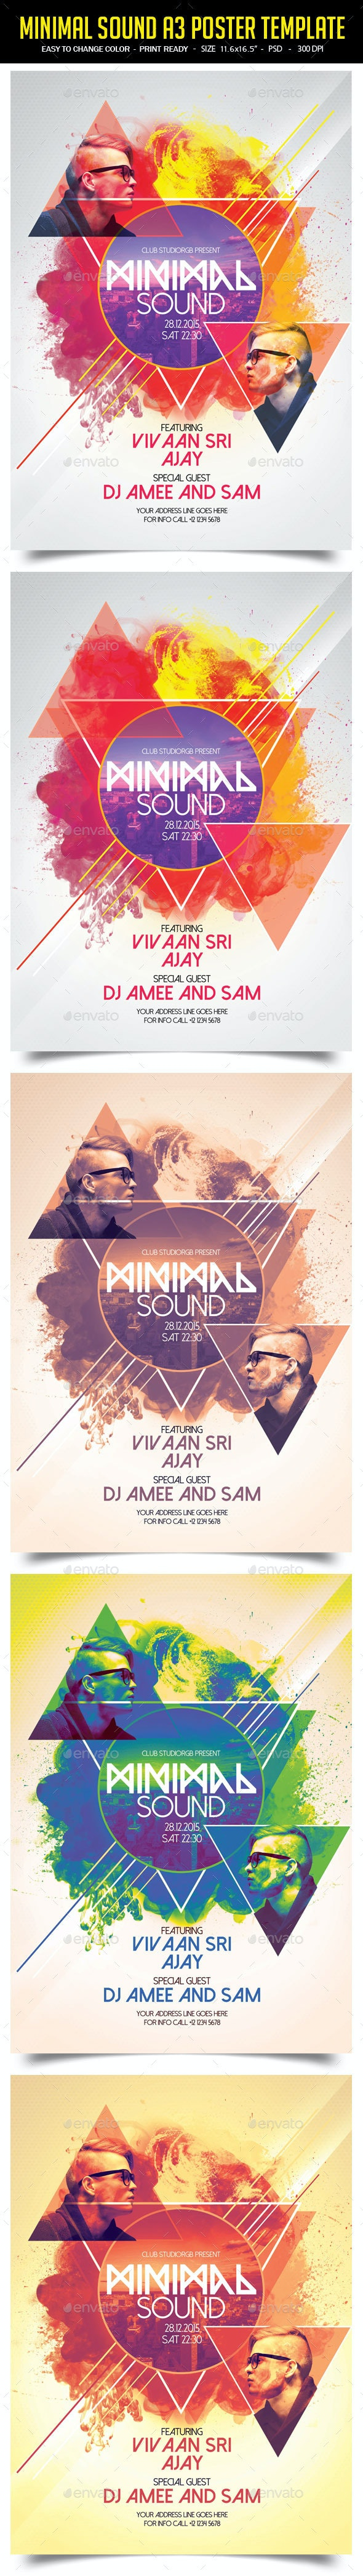 Minimal Sound A3 Poster Template - Clubs & Parties Events